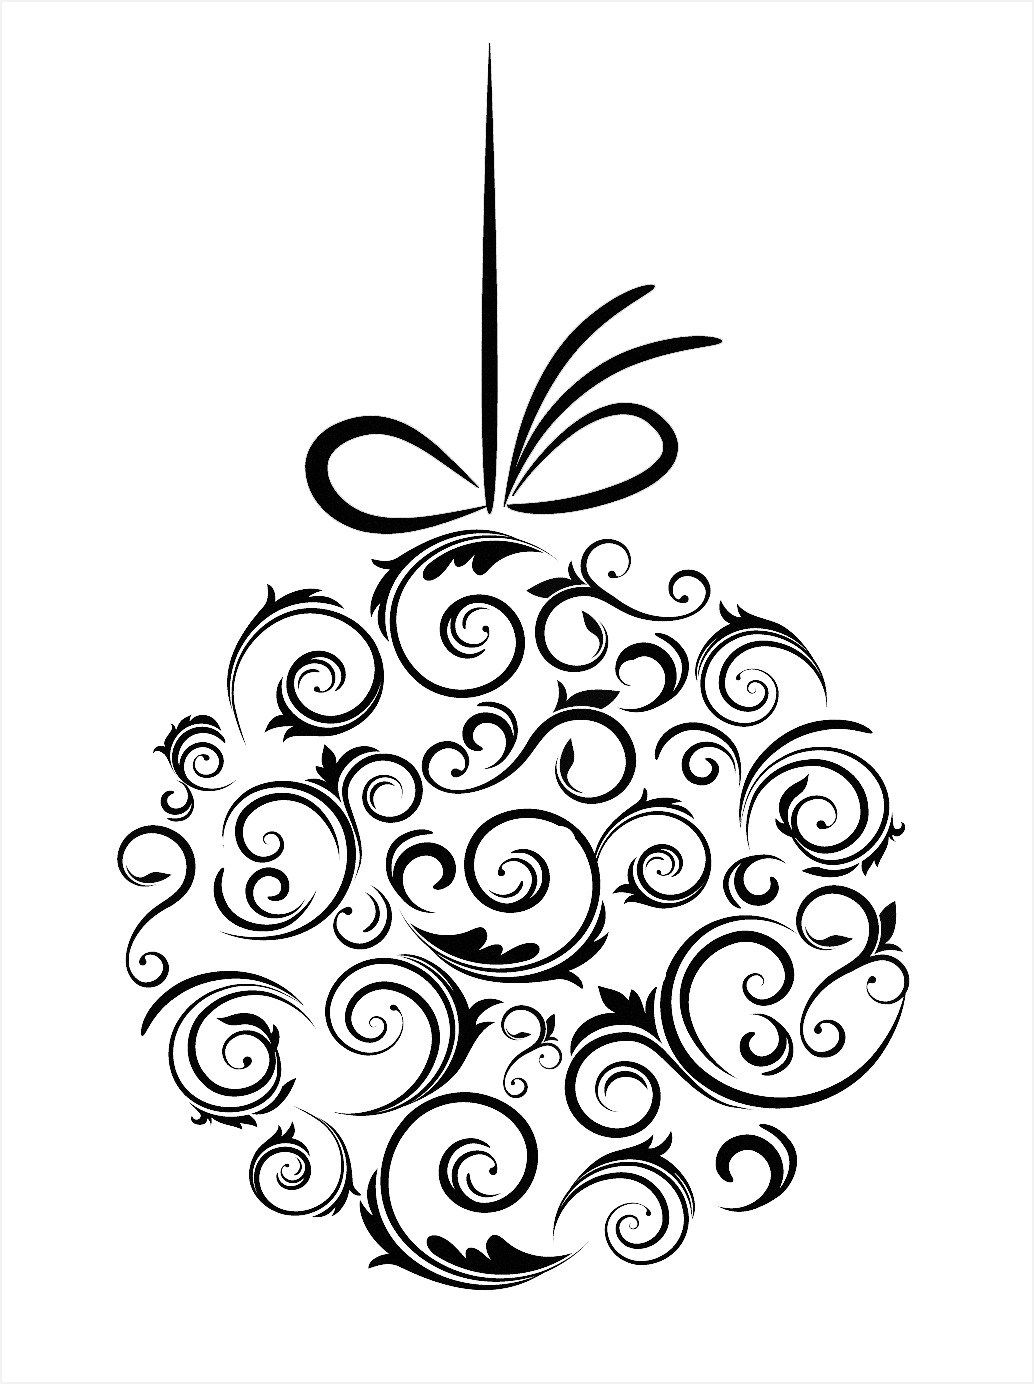 41 Beautiful Black And White Christmas Decor Ideas Homenthusiastic White Christmas Ornaments White Christmas Decor Black White Christmas Christmas clip art black and white cool